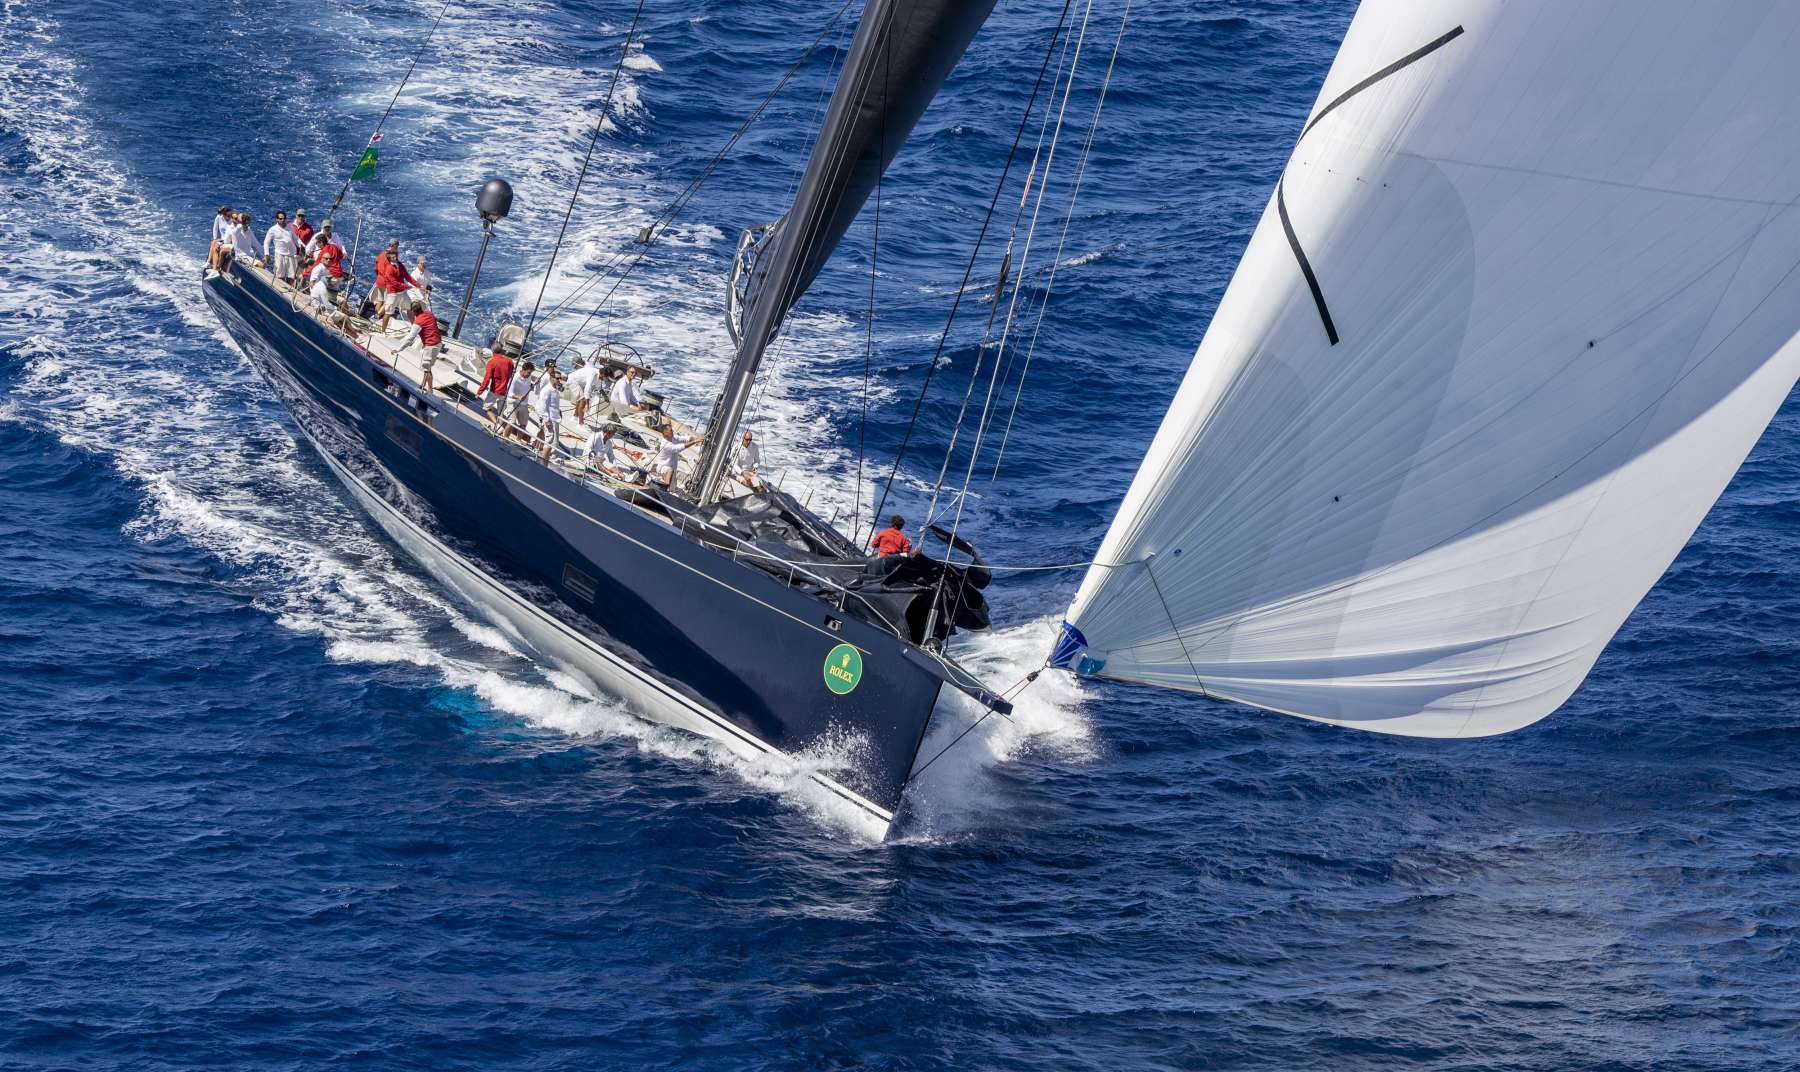 Interview with Alberto Bolzan My Song tactician - Maxi Yacht Rolex Cup 2018 - NEWS - Yacht Club Costa Smeralda